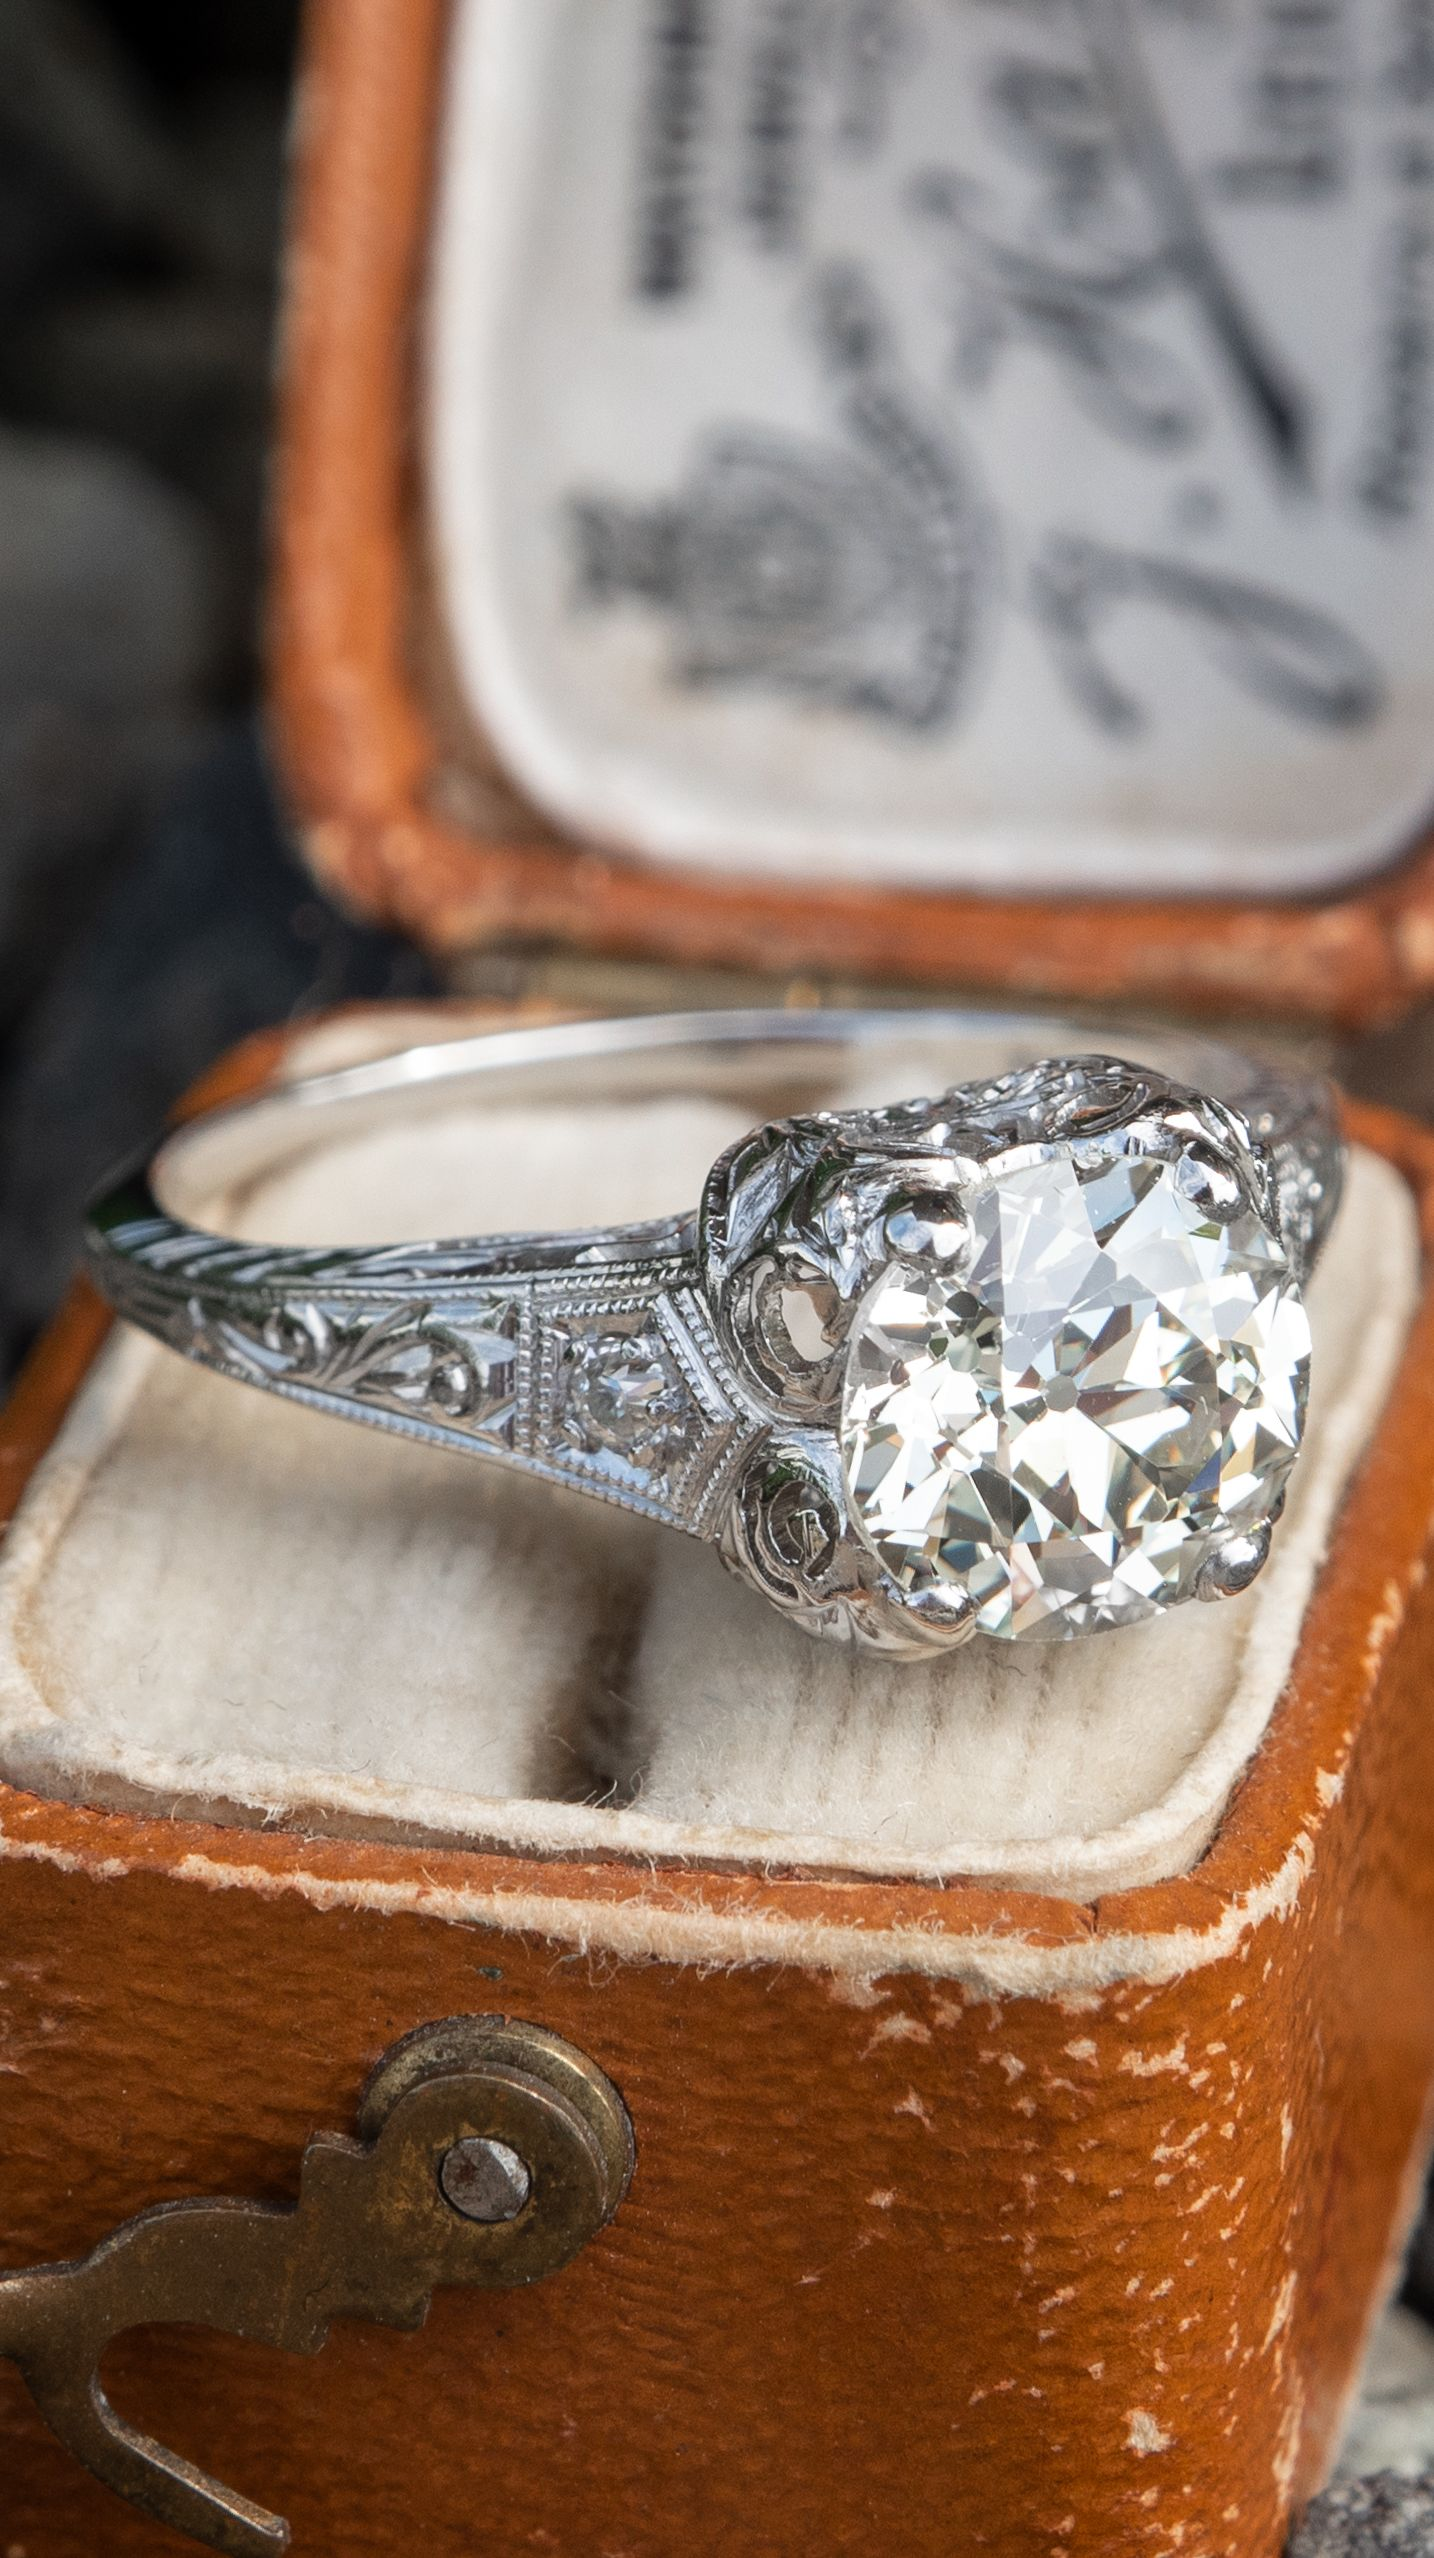 Edwardian Era 1910 S Antique Diamond Engagement Ring Platinum Antique Diamond Engagement Rings Antique Diamond Engagement Engagement Rings Platinum